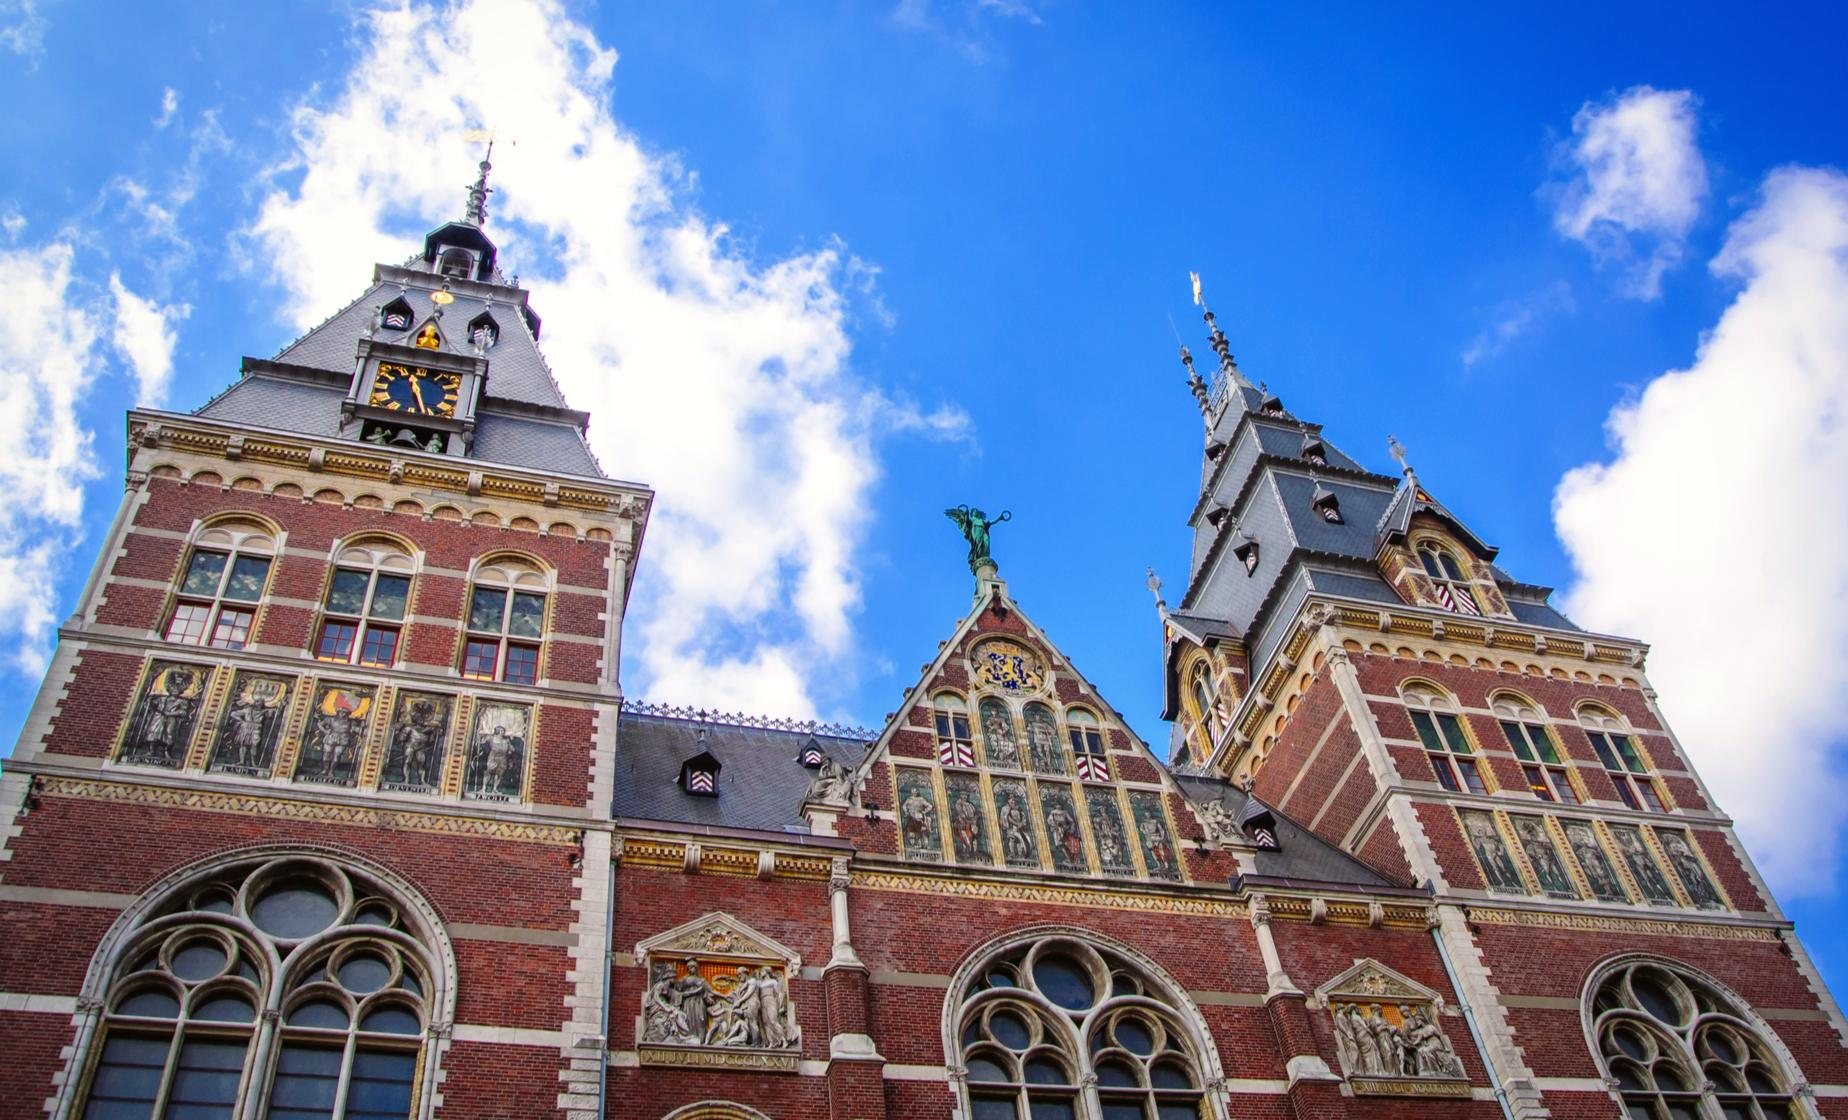 Amsterdam cruise excursions, Canal Cruise and Skip the Line Rijksmuseum Excursions |  Vangogh, canal, monet